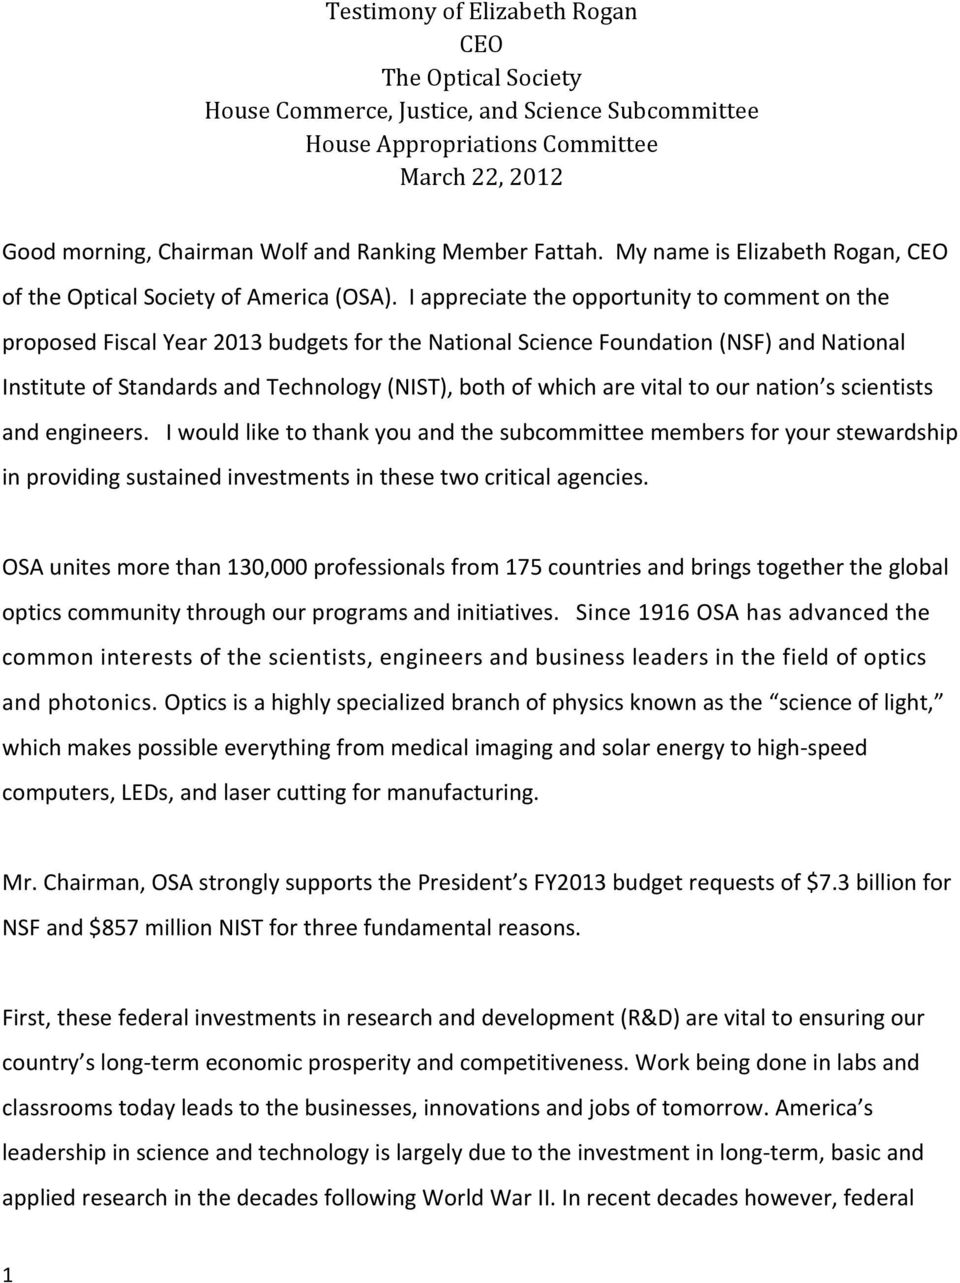 I appreciate the opportunity to comment on the proposed Fiscal Year 2013 budgets for the National Science Foundation (NSF) and National Institute of Standards and Technology (NIST), both of which are